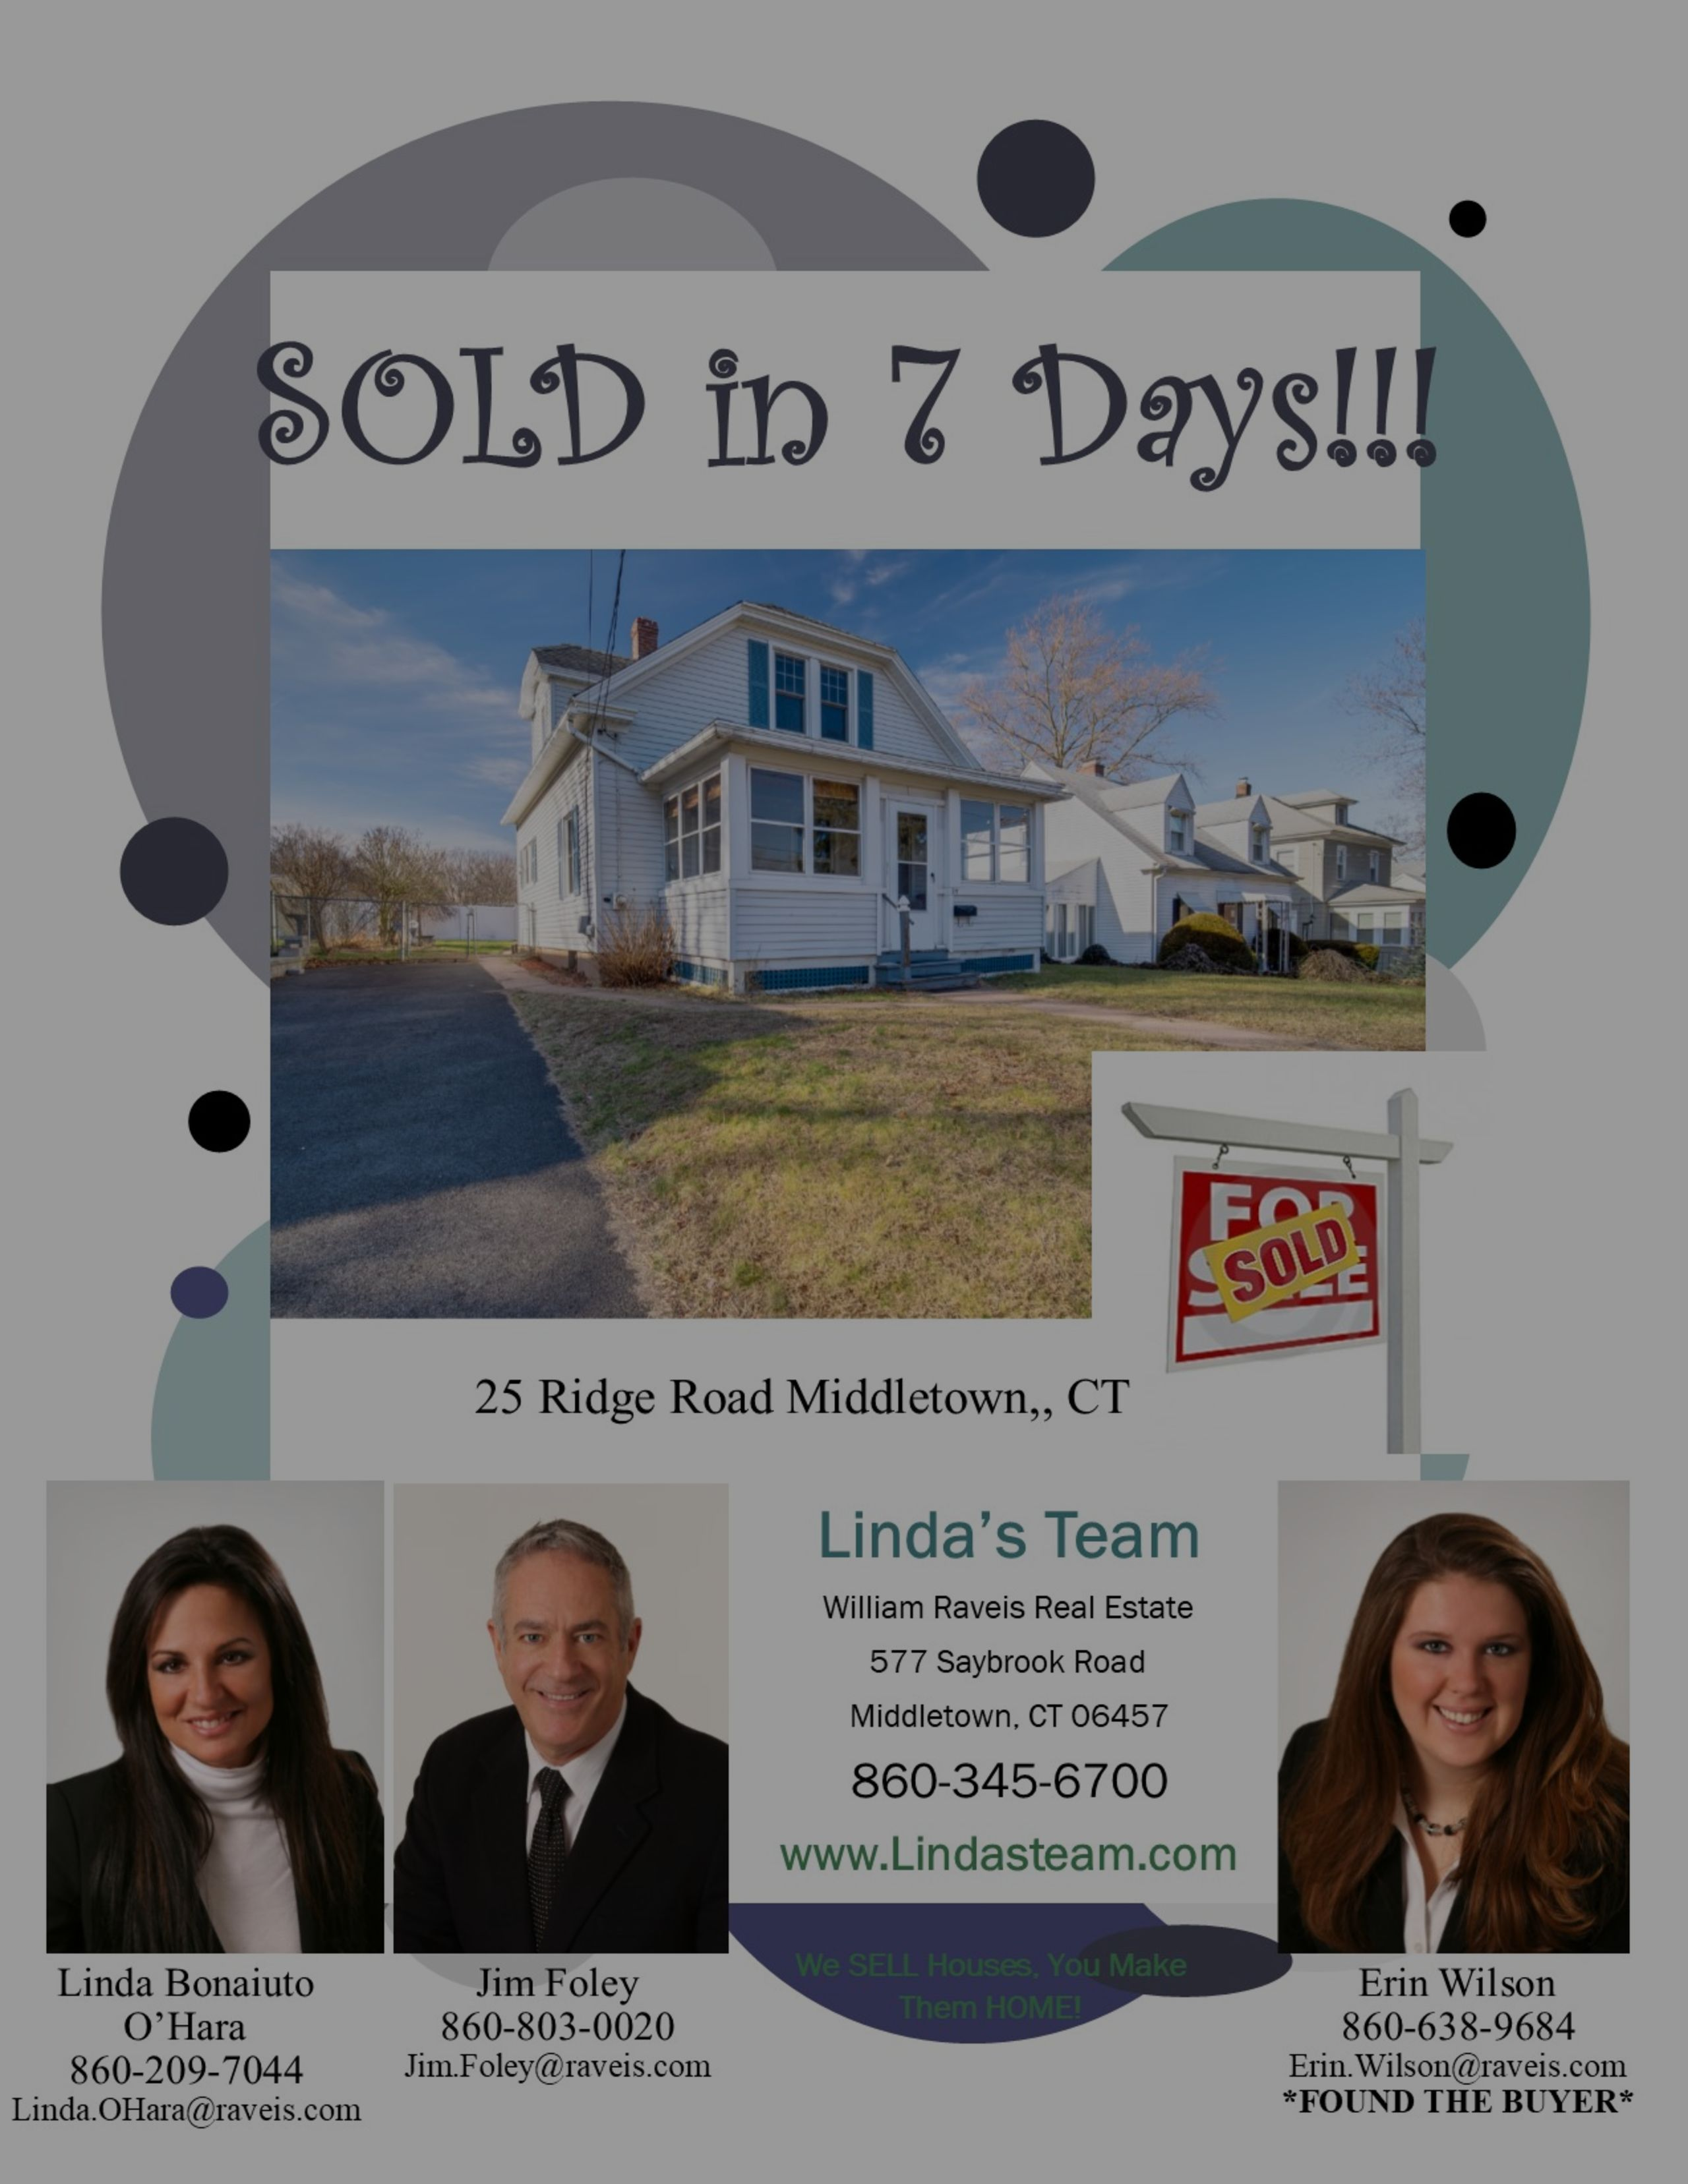 SOLD in 7 Days!!